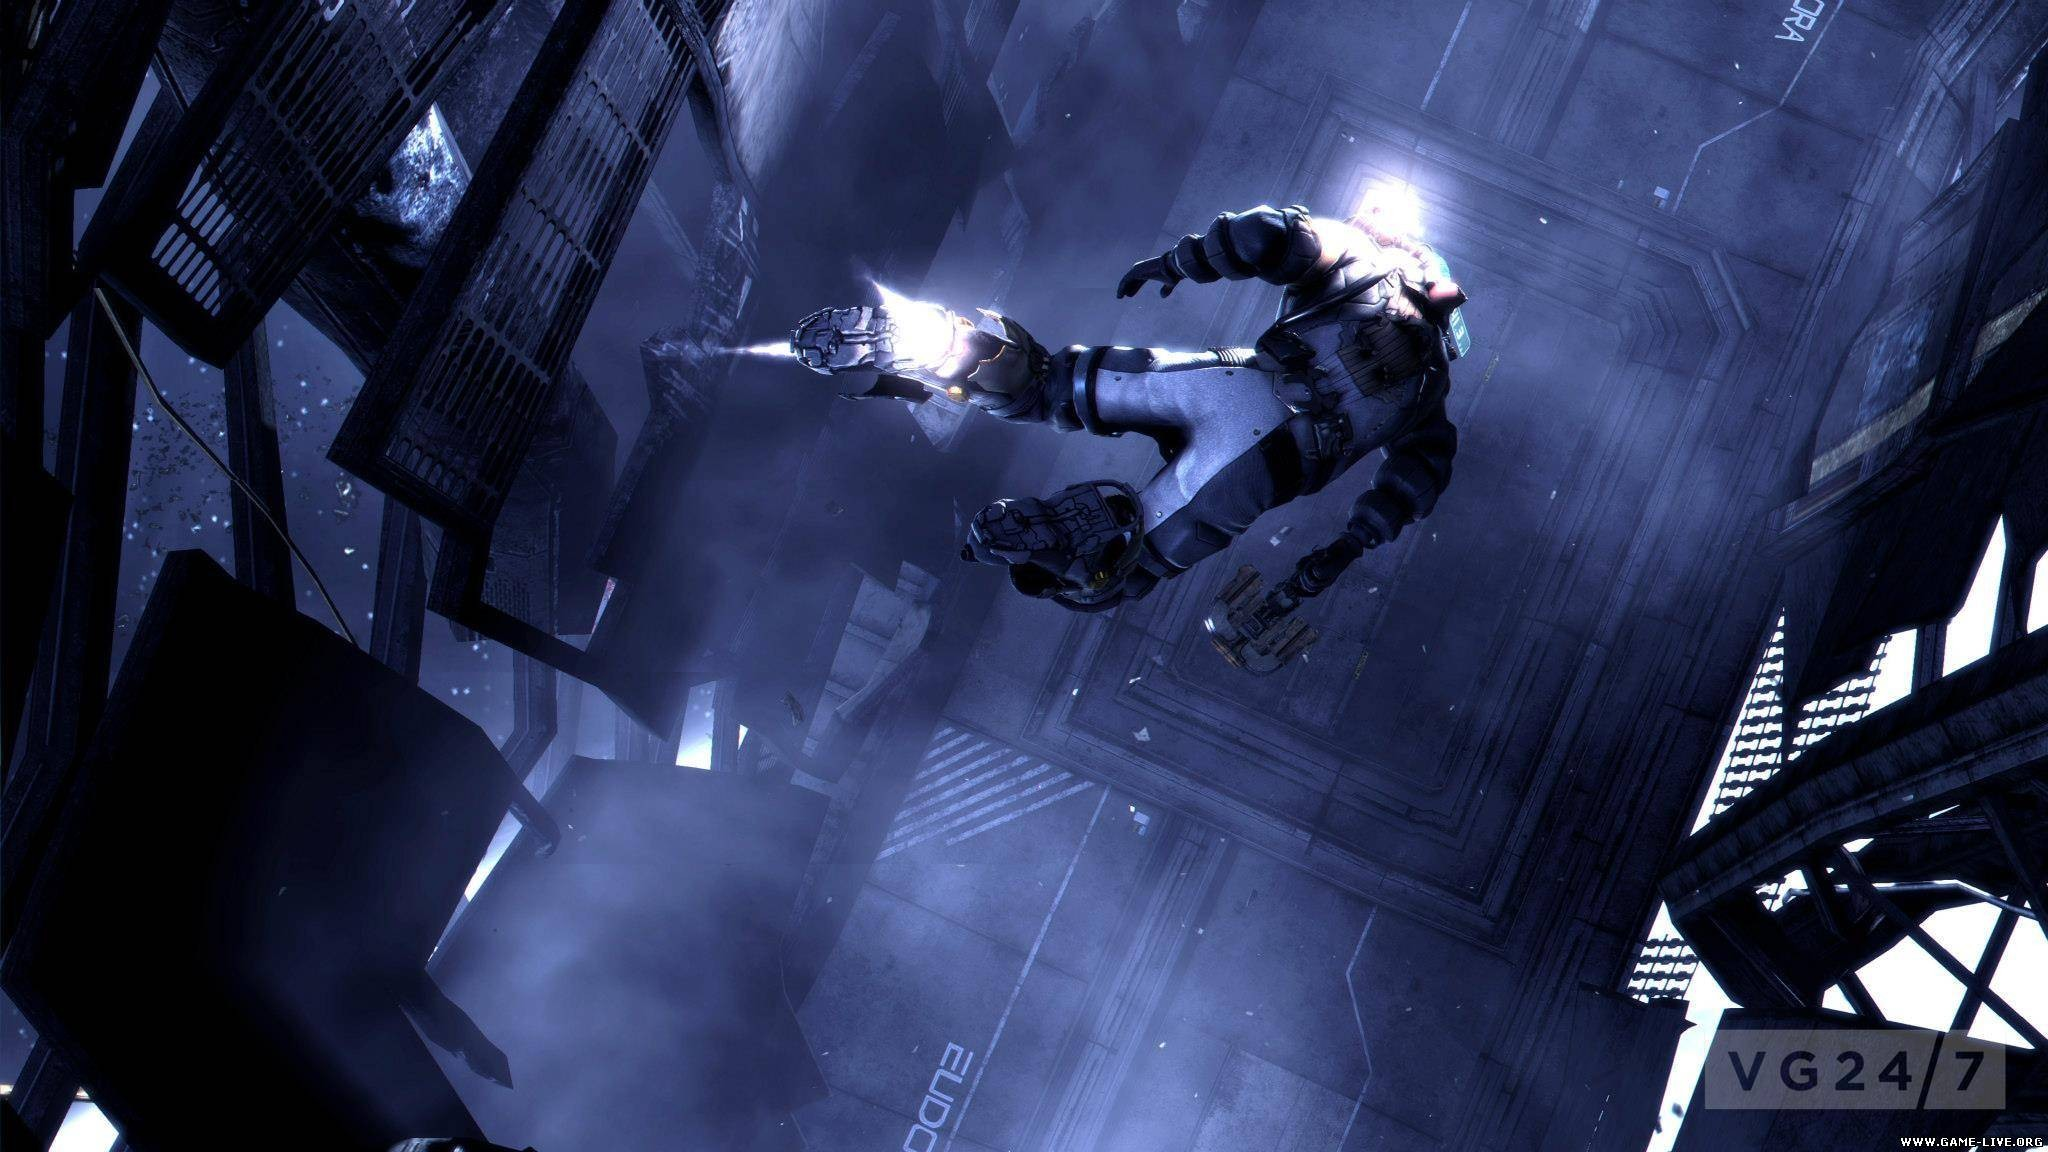 Dead space 3 wallpapers pictures images - Dead space 1 wallpaper hd ...